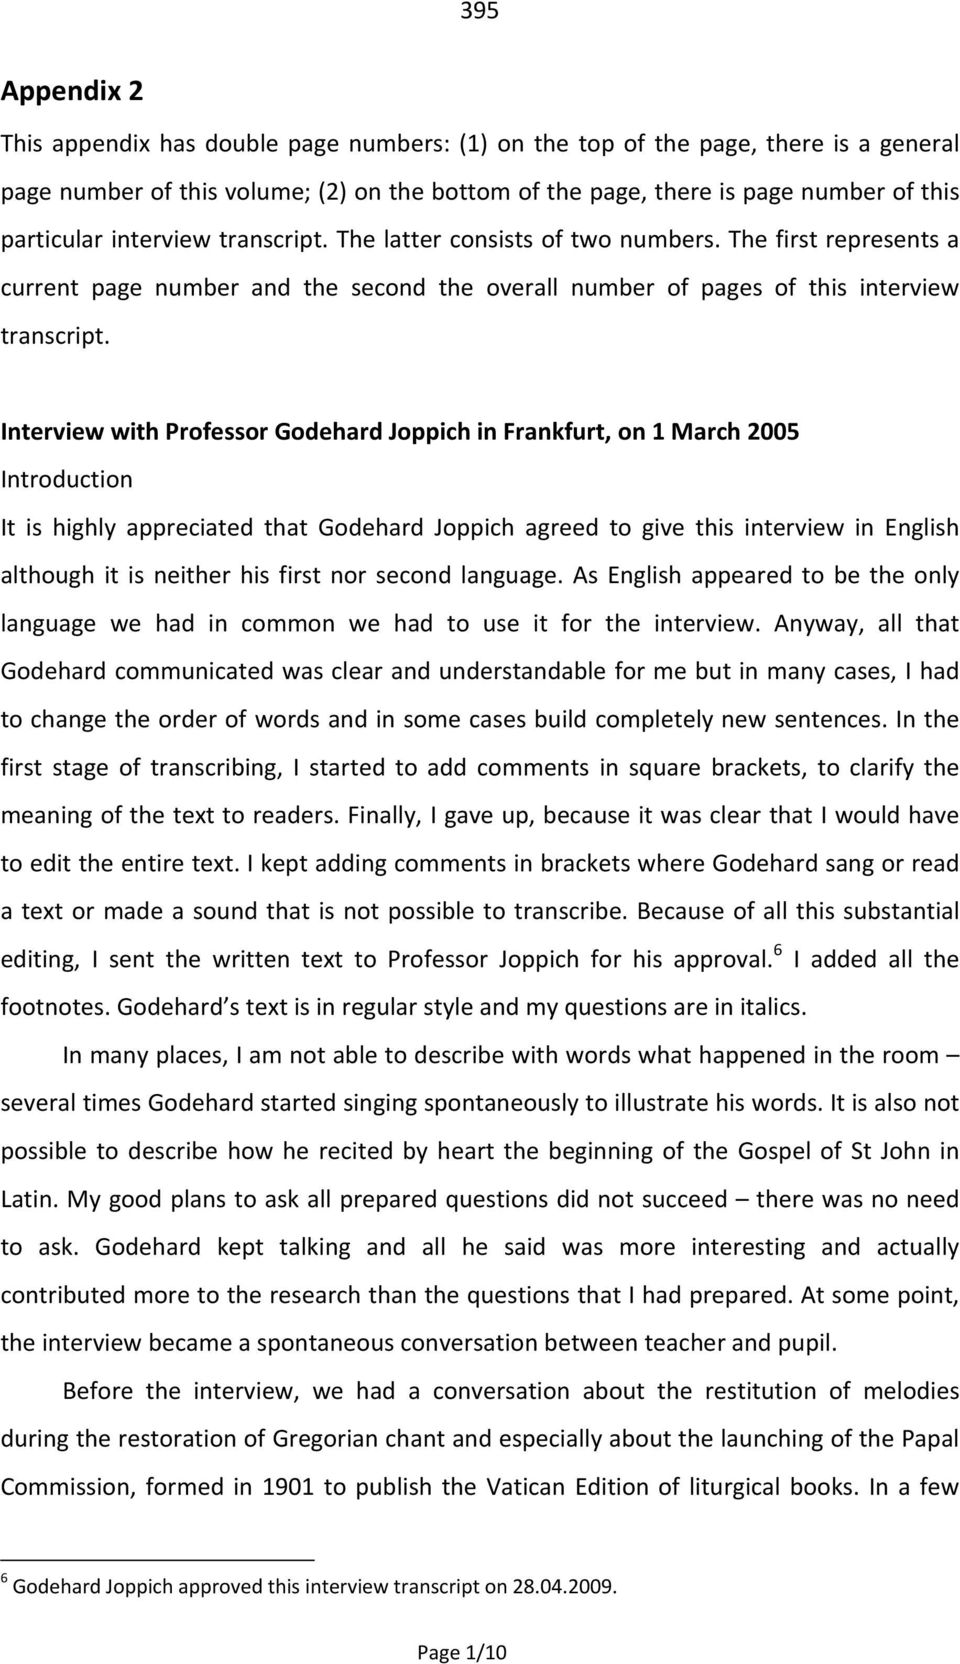 Interview with Professor Godehard Joppich in Frankfurt, on March 5 Introduction It is highly appreciated that Godehard Joppich agreed to give this interview in English although it is neither his